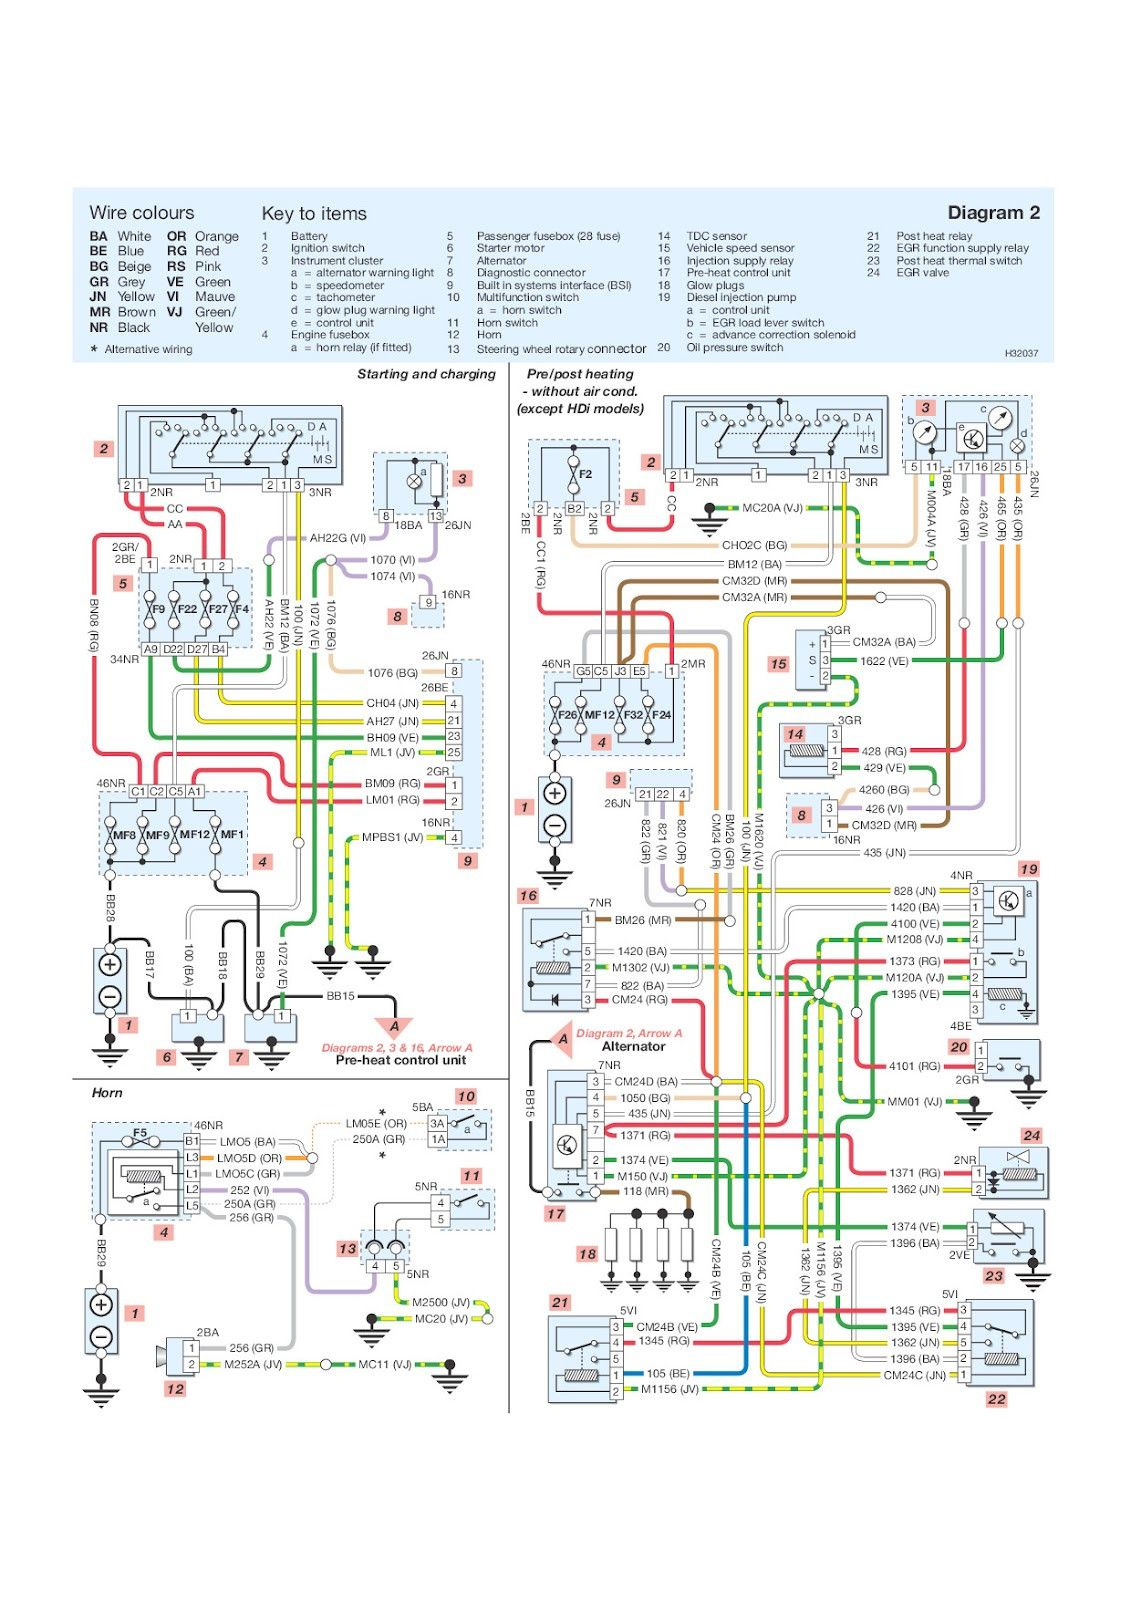 peugeot wiring diagrams 206 wiring diagram name diagrams peugeot 207 engine diagram peugeot 206 map sensor peugeot [ 1131 x 1600 Pixel ]